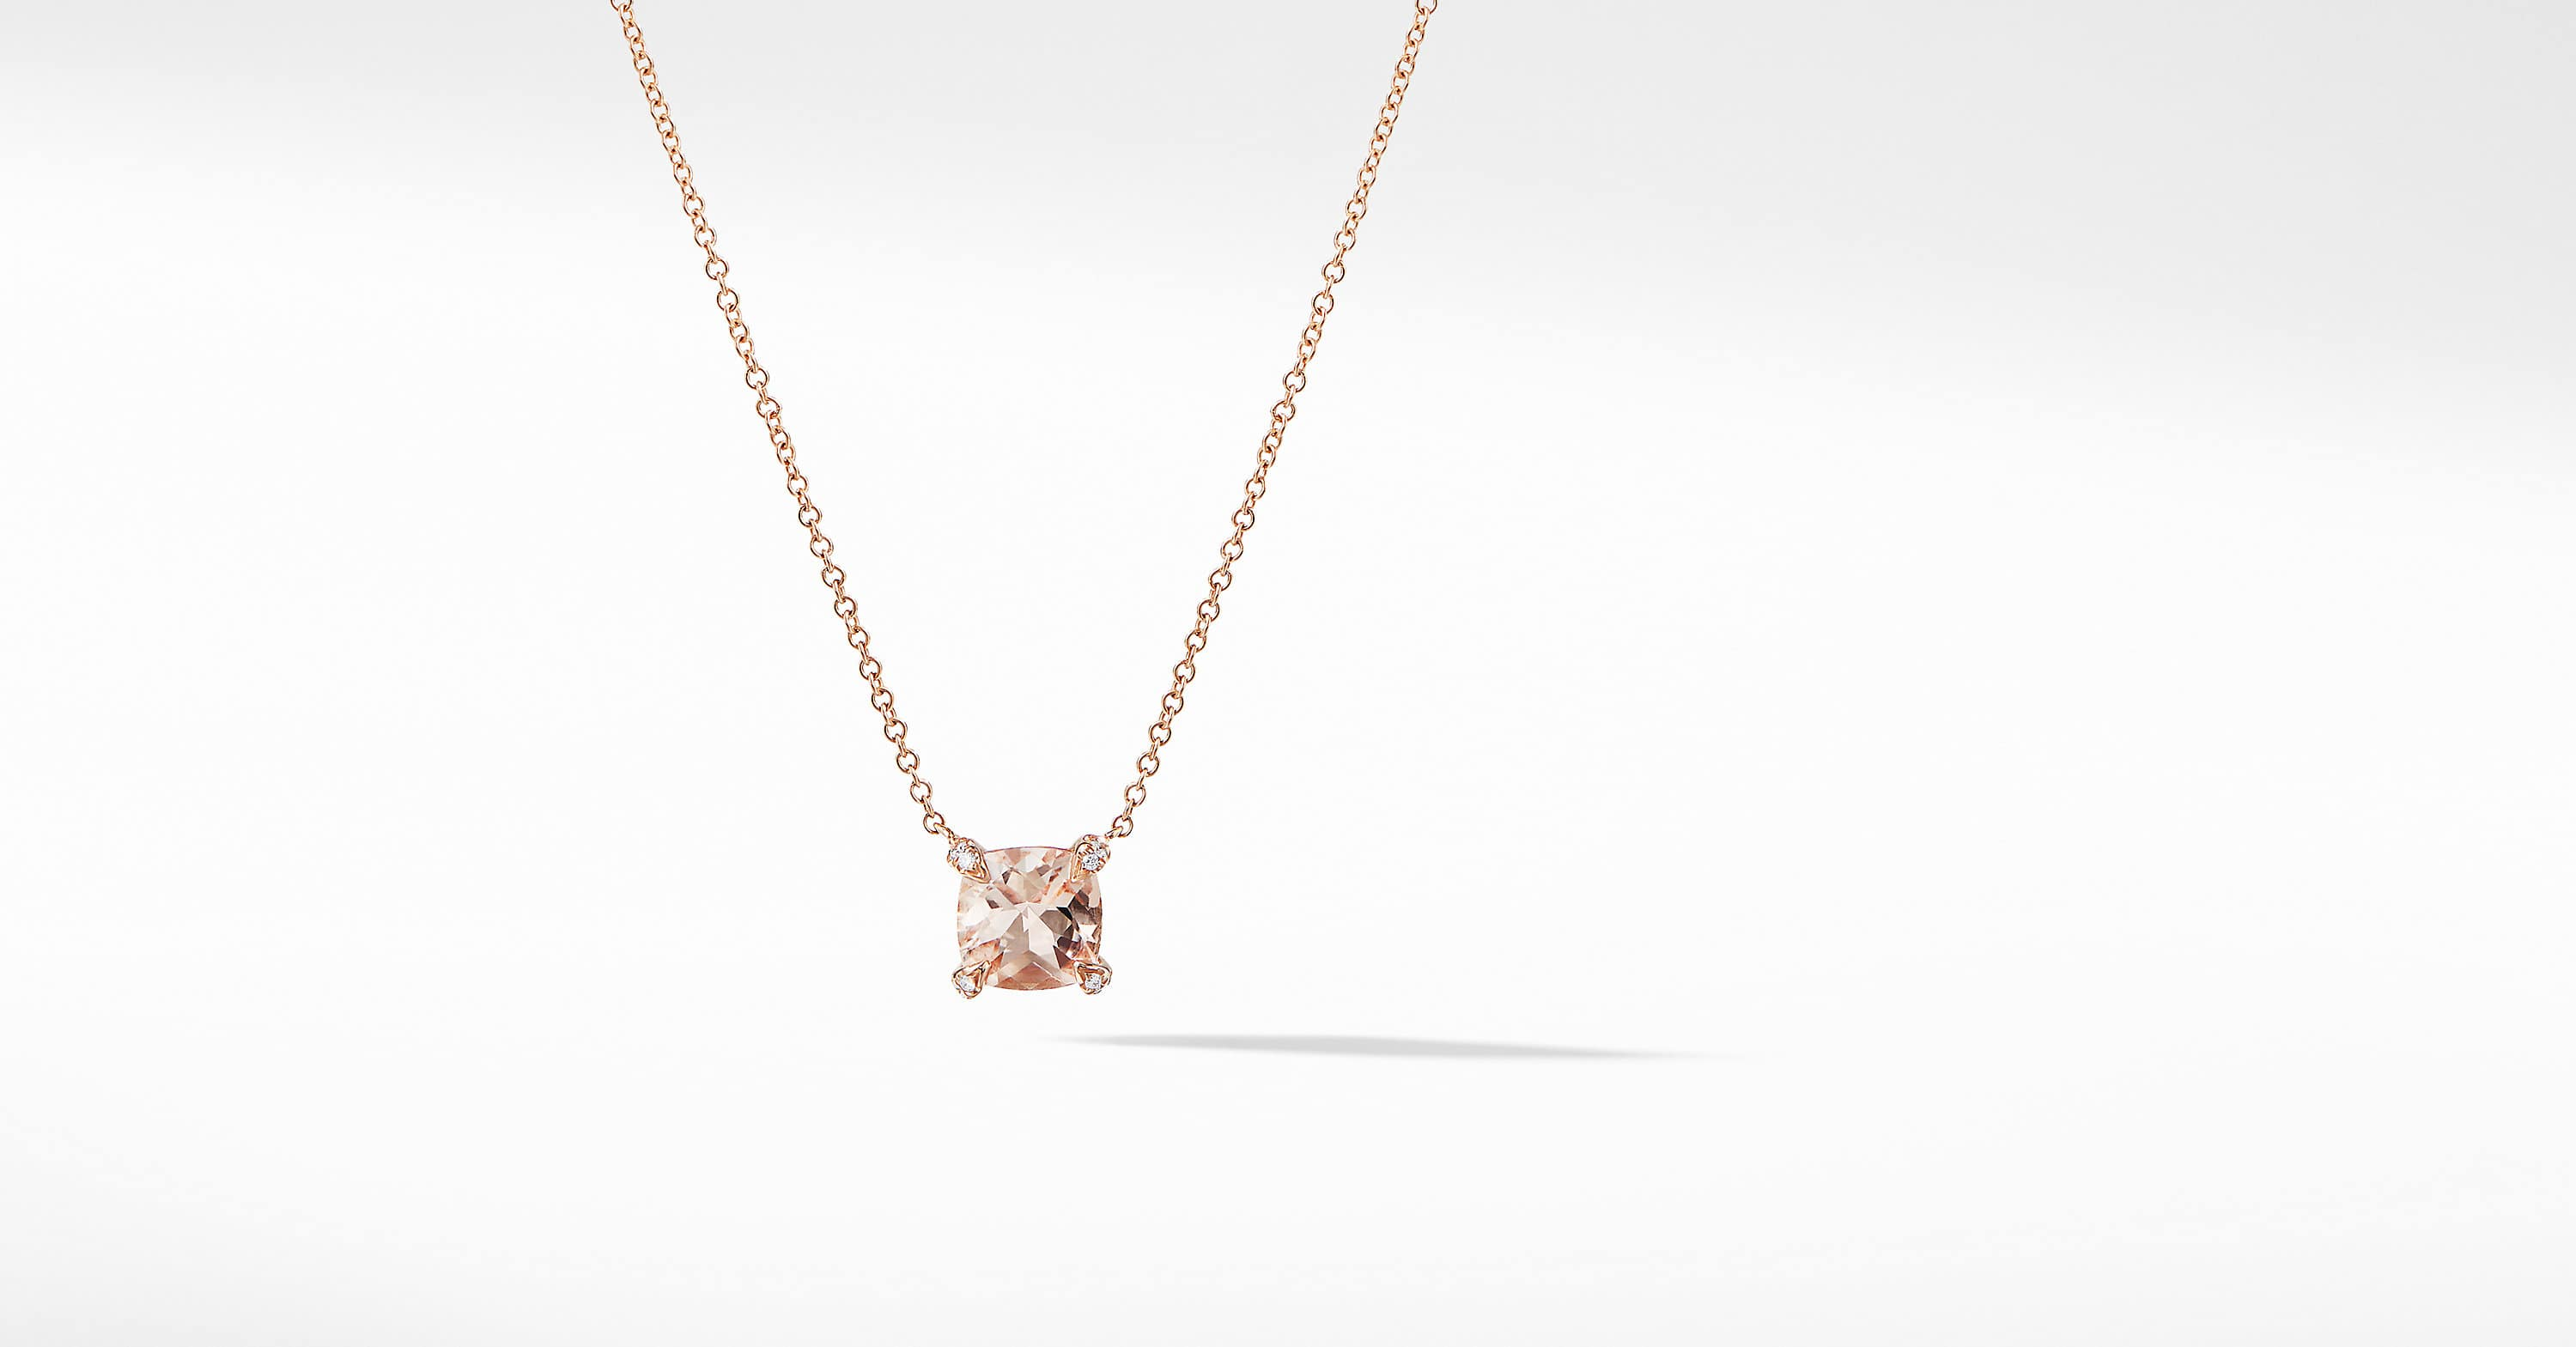 Chatelaine Pendant Necklace with Diamonds in 18K Rose Gold, 7mm